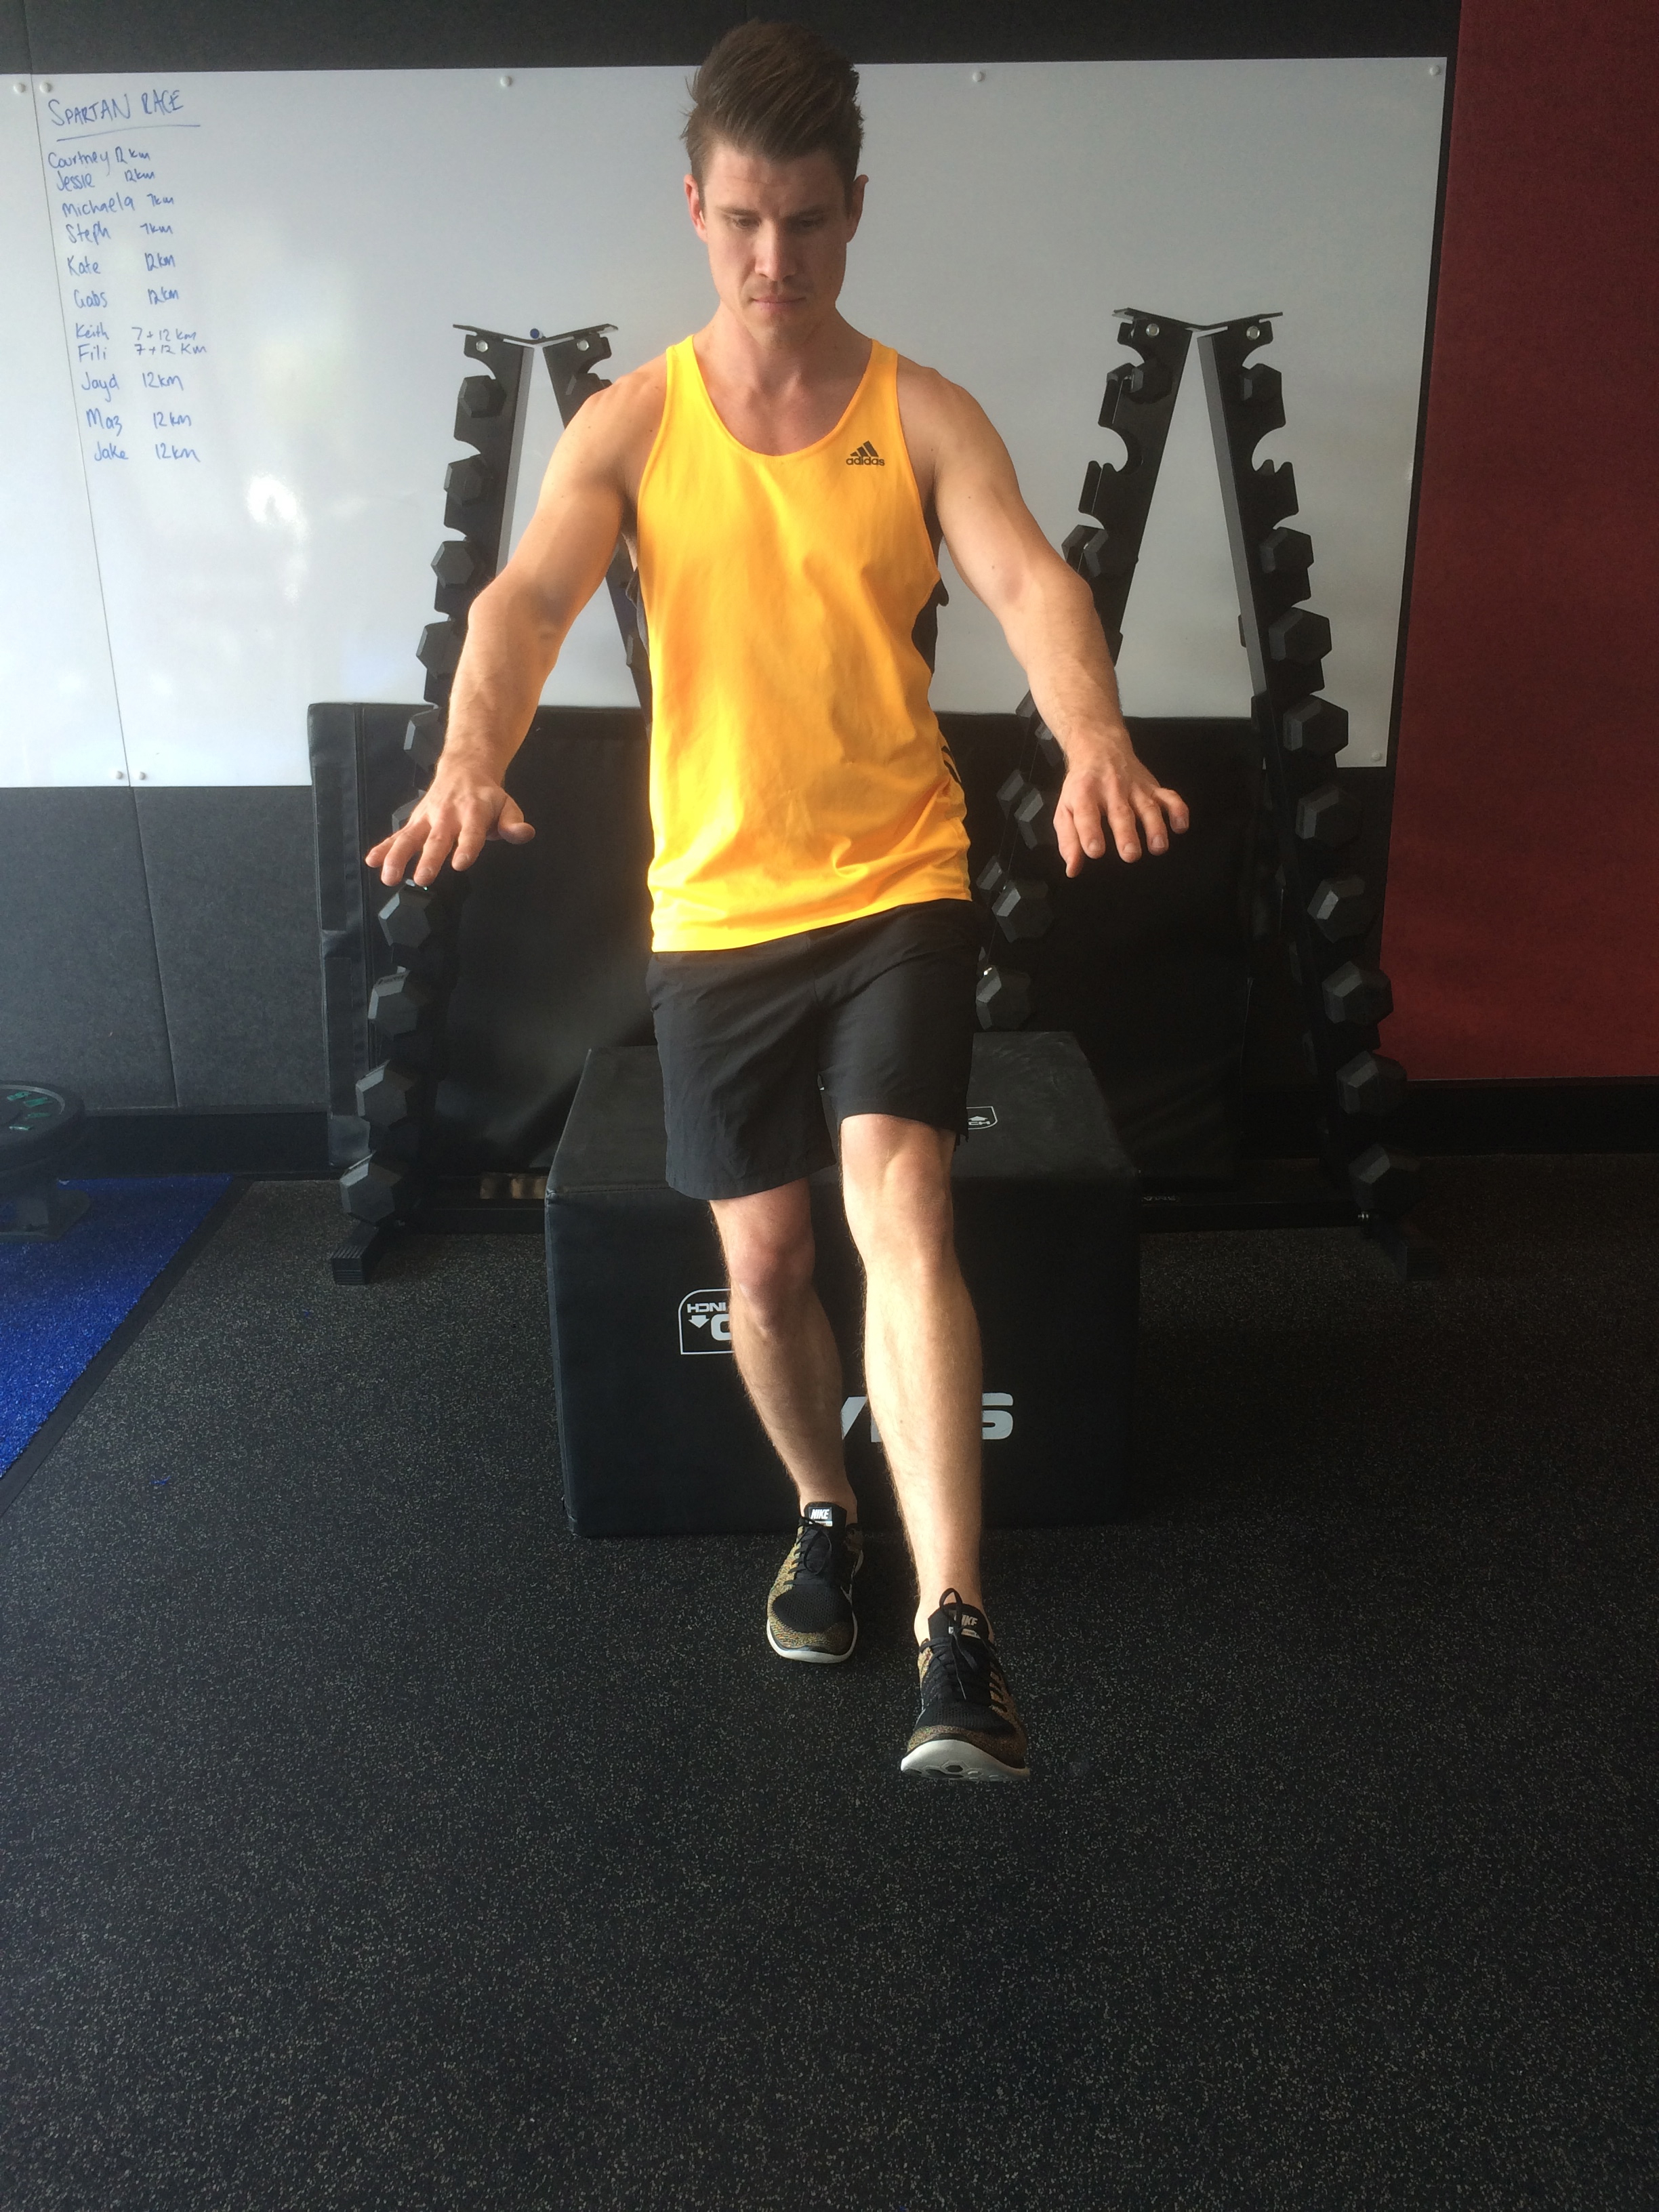 single leg squat progression at the functional movement club, your local northern beaches chiropractor also servicing the gladeville area